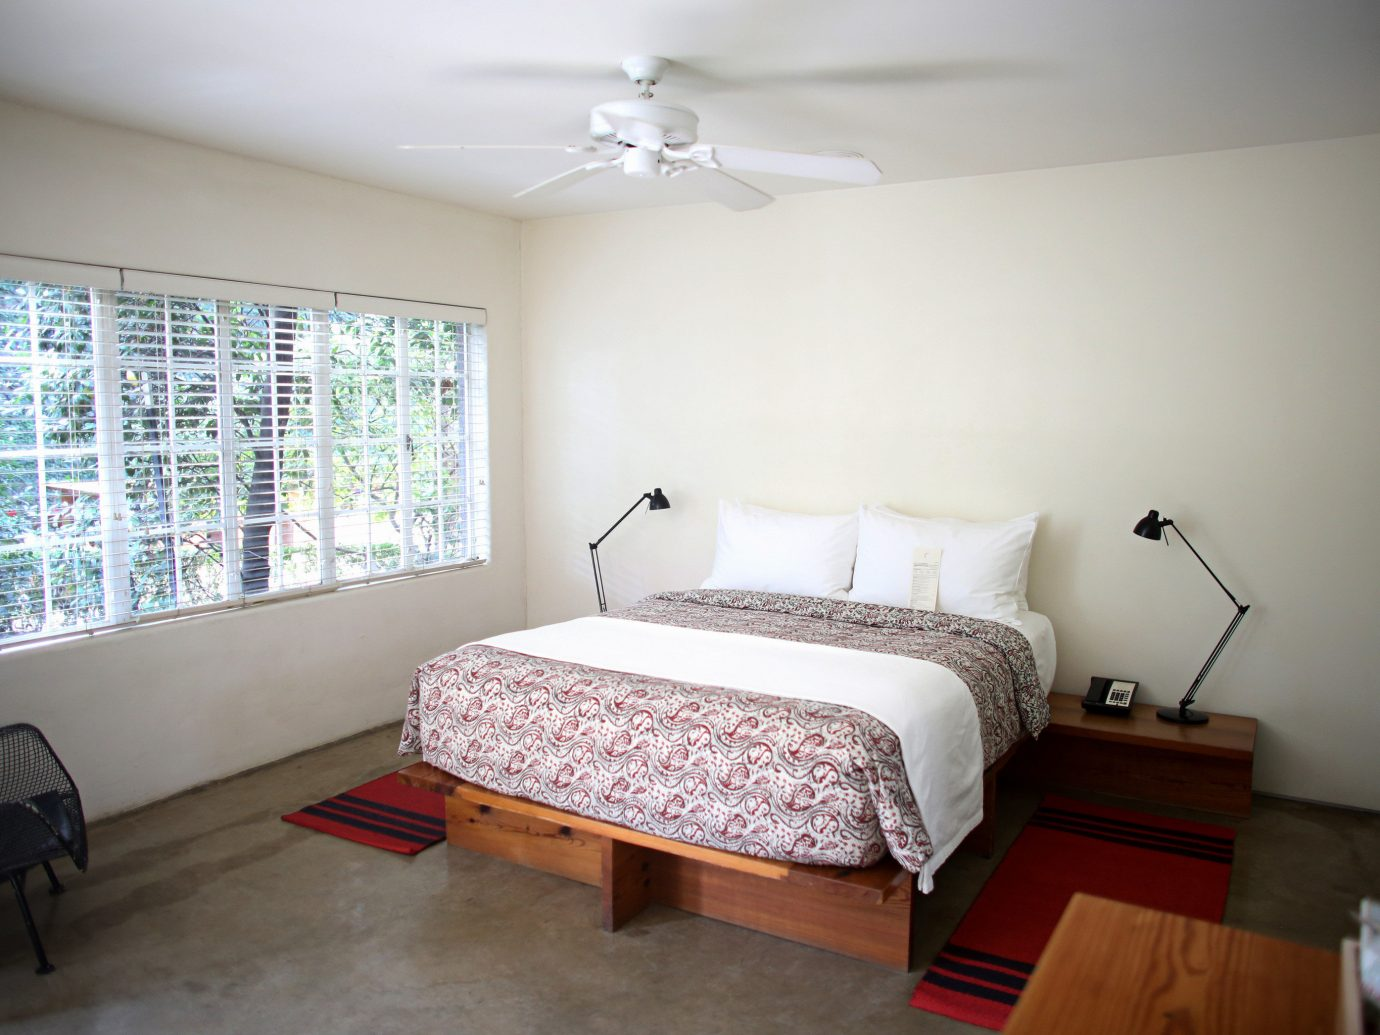 Bedroom Design Hip Hotels wall indoor floor room ceiling property bed real estate cottage estate home interior design condominium apartment living room furniture area wood